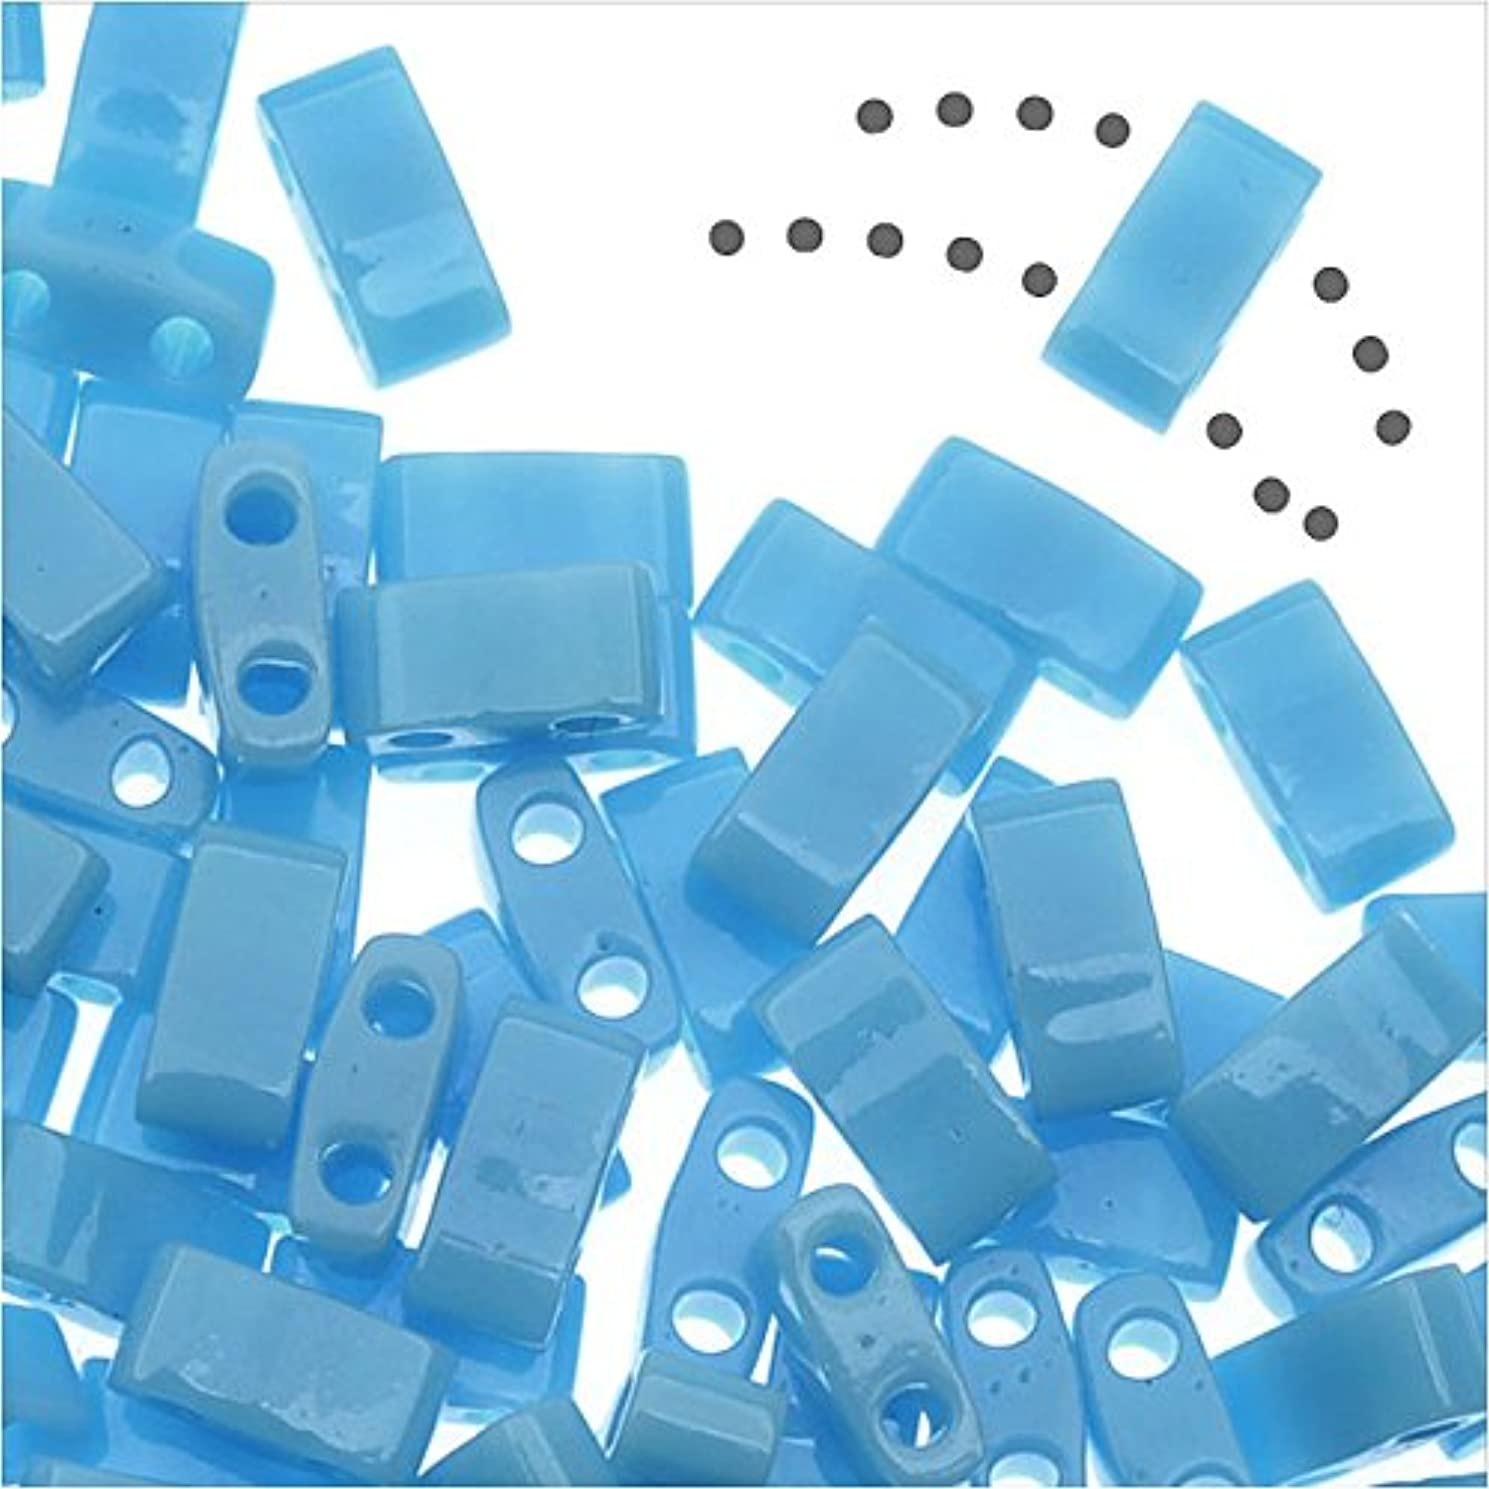 Miyuki Half Tila 2 Hole Rectangle Beads 5x2.3mm - Opaque Turquoise Blue 7.8 Grams